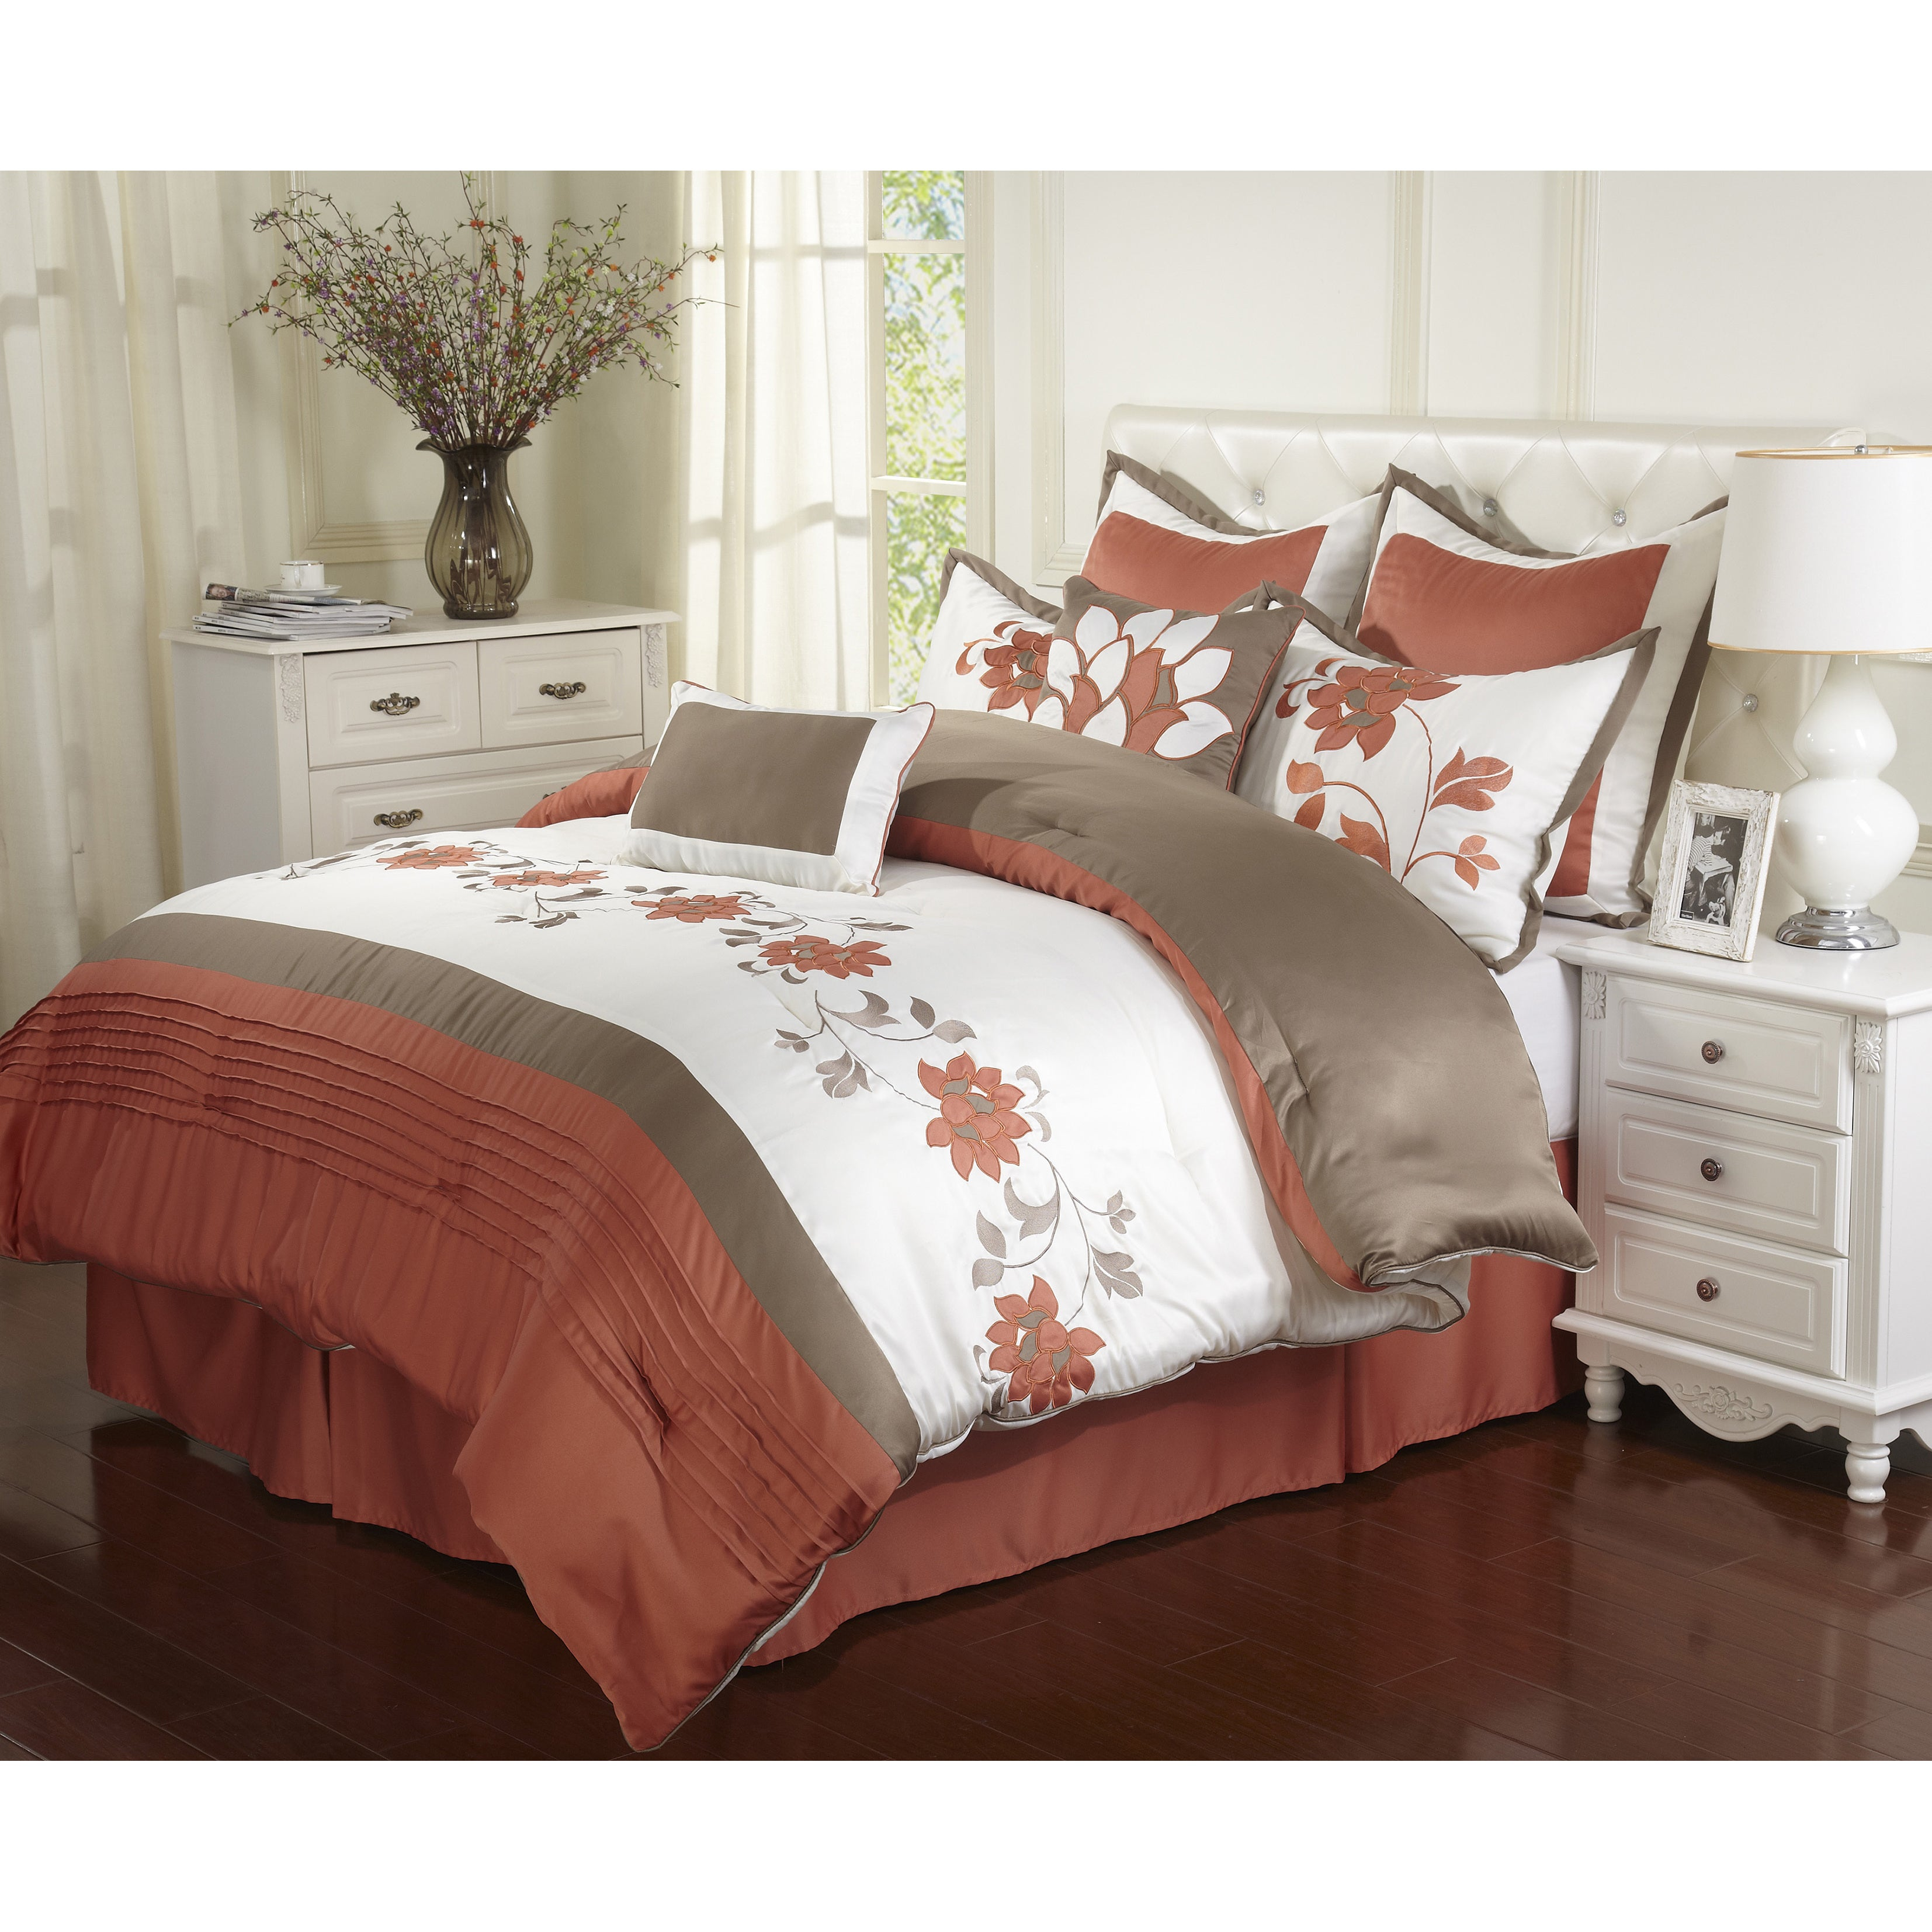 of suede warmth reviews luxury comforter goose down buy size rated comforters costco fluffiest best sets quilt light pacific to where full set